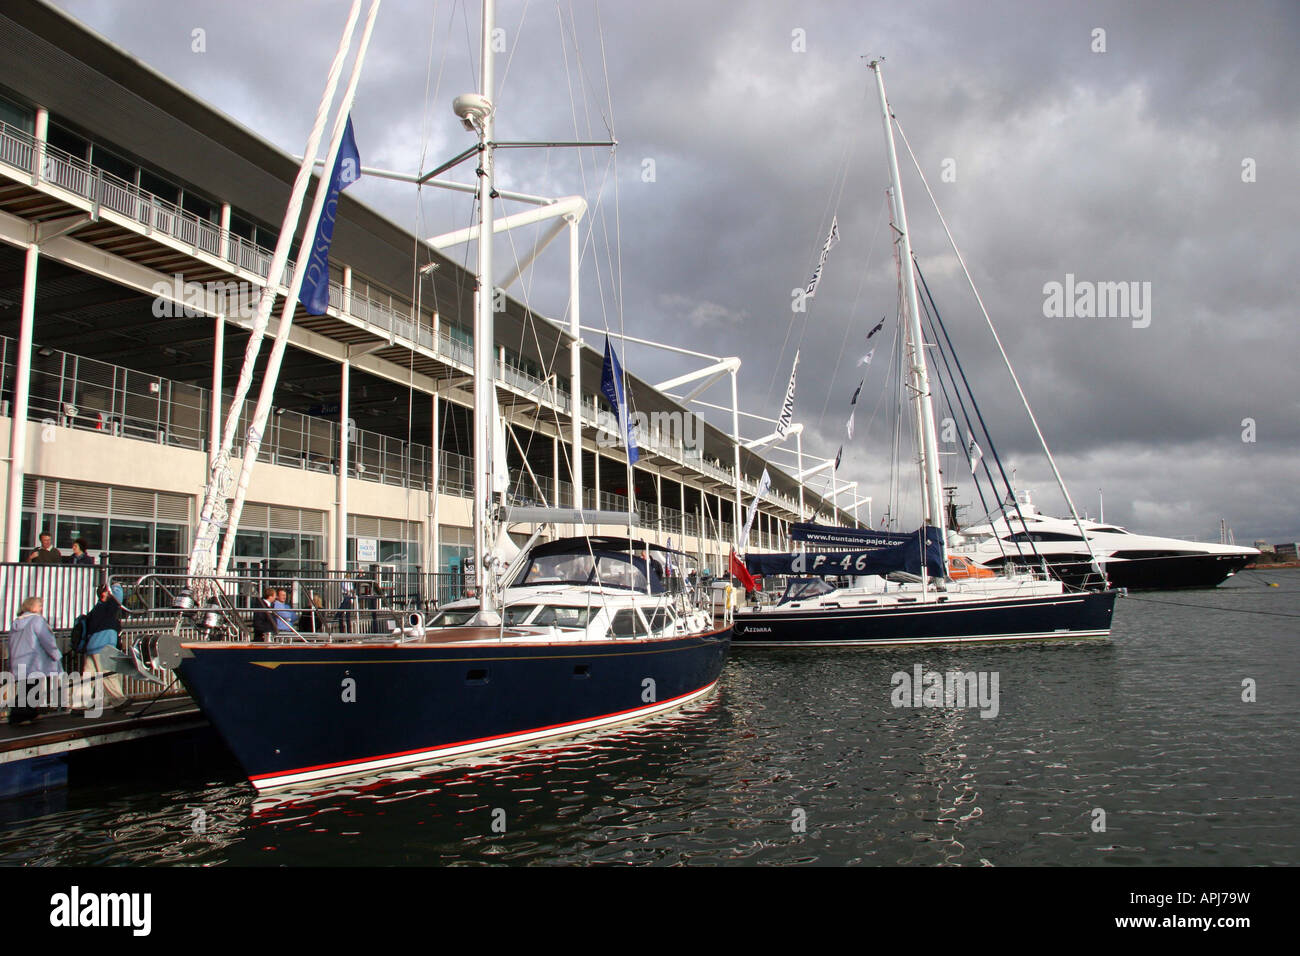 large blue saling yatch moored up at the quay for the london boat show - Stock Image